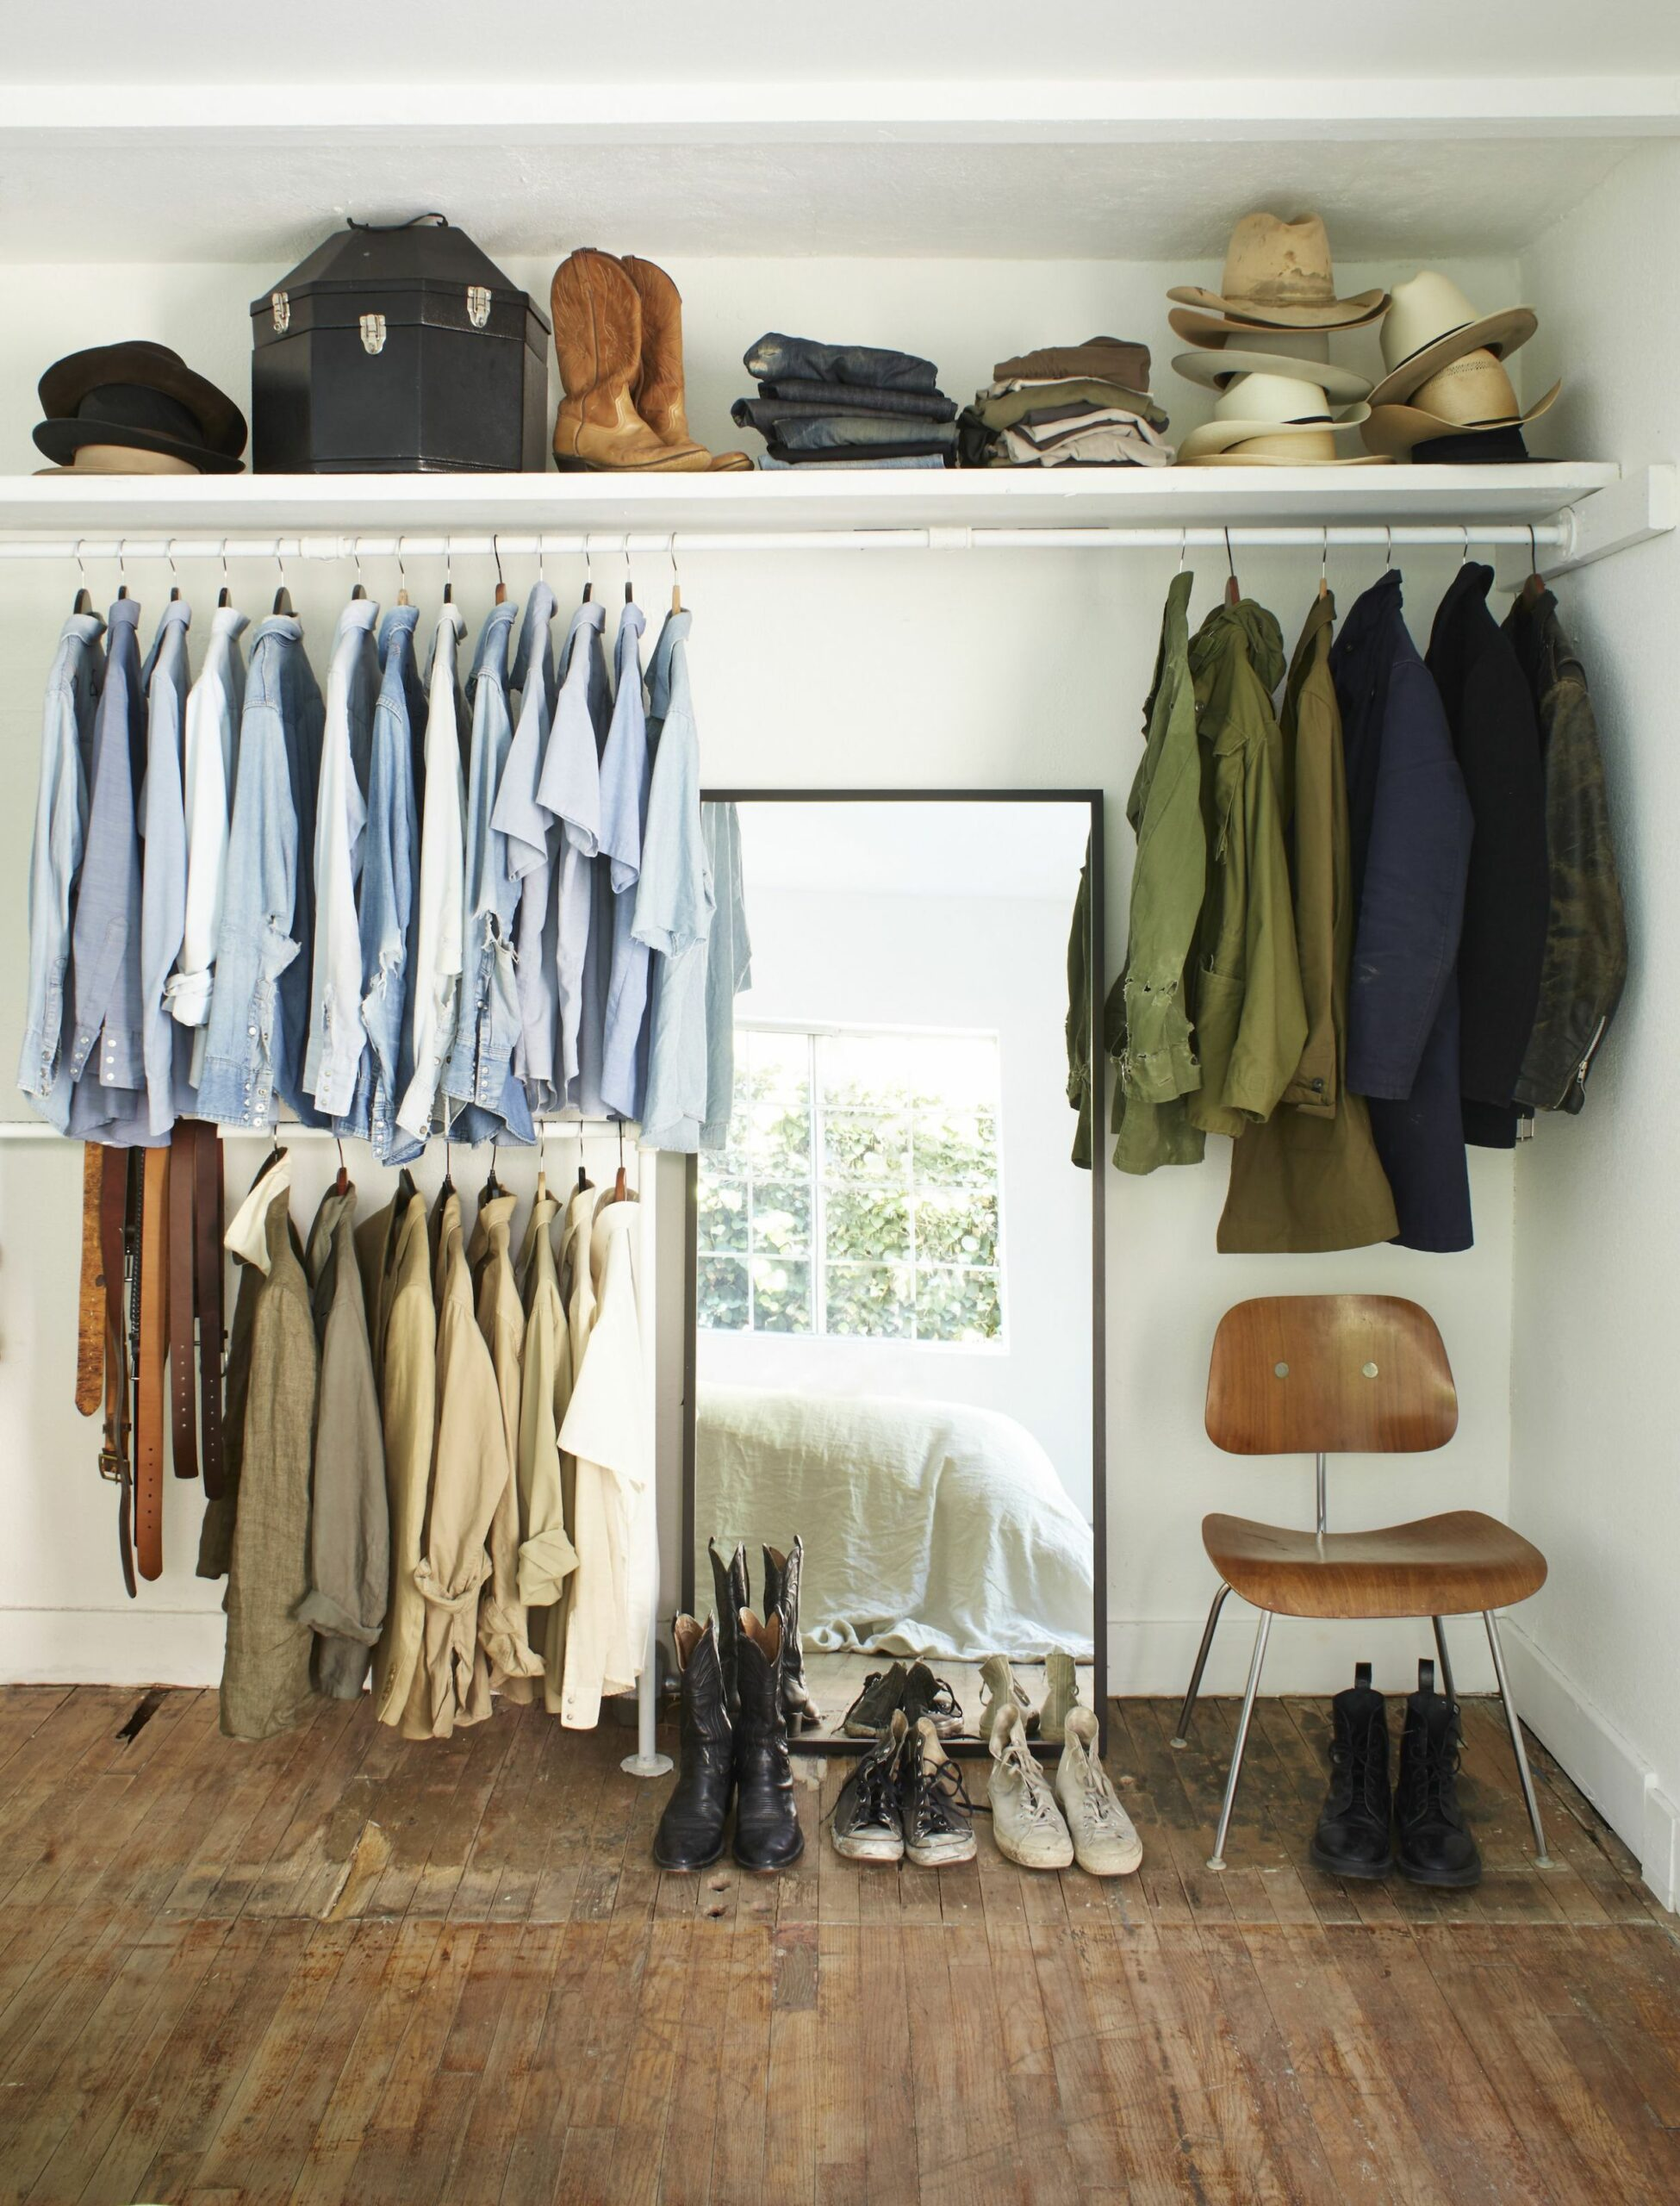 12 Best Closet Organization Ideas - How to Organize Your Closet - closet arrangement ideas